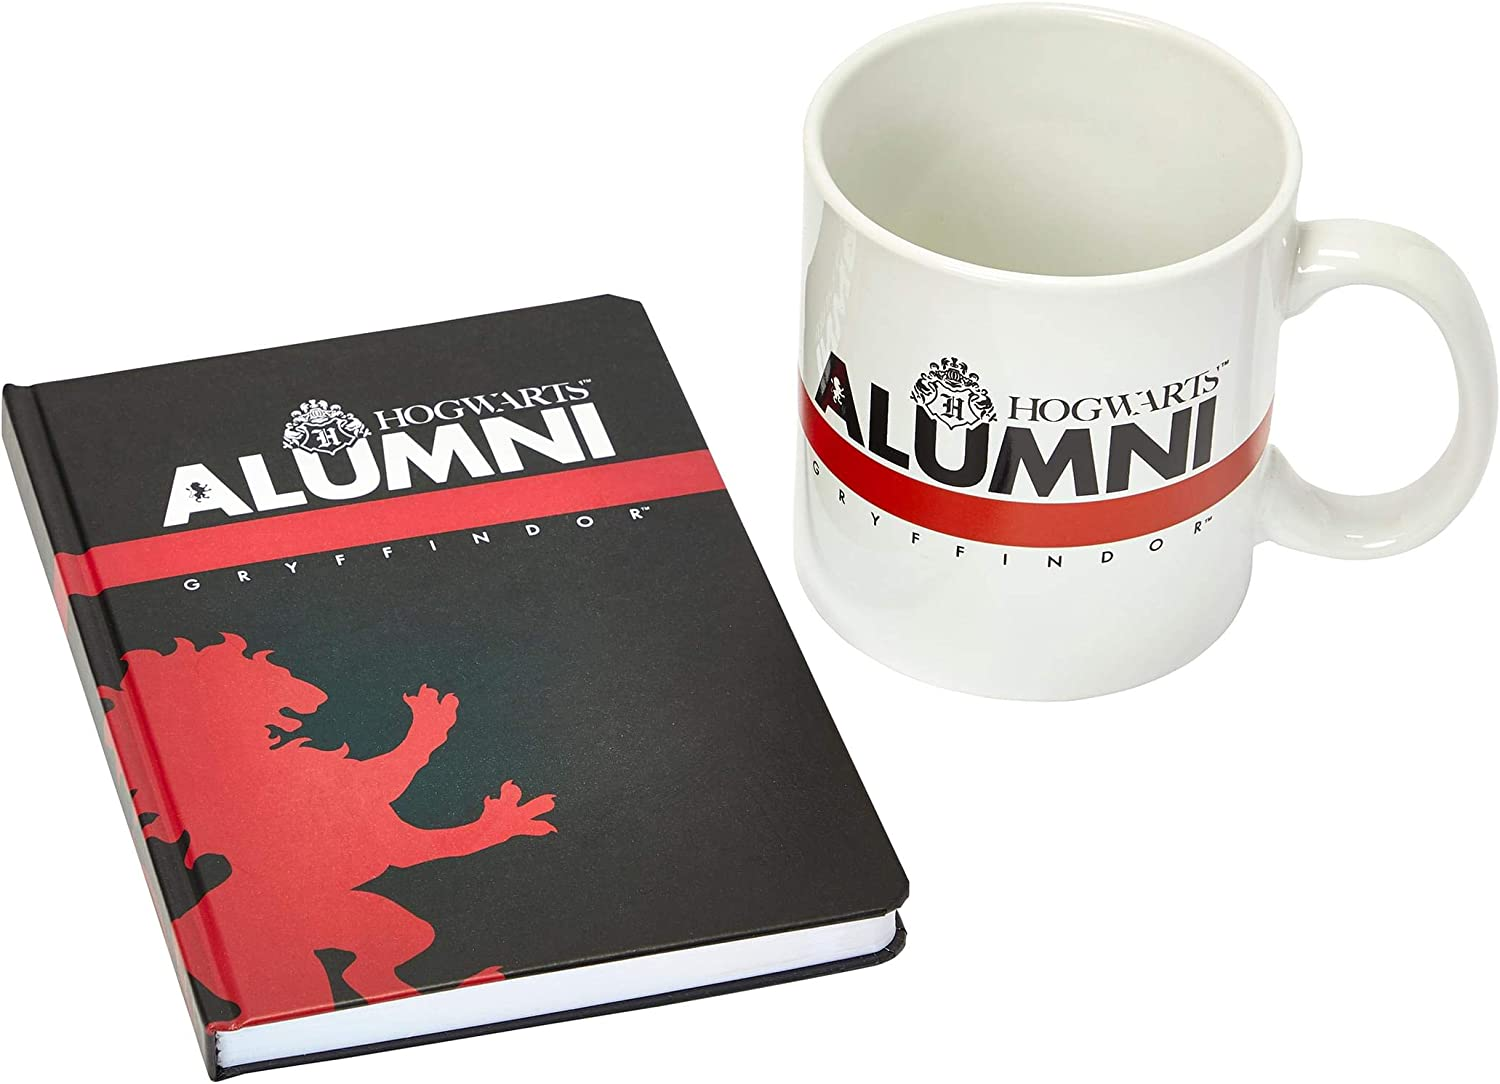 Includes 160-Page Hogwarts Notebook and 20-Oz Ceramic Cup With Handle Harry Potter Gryffindor Alumni 2-Piece Journal /& Mug Set From Rowlings Wizarding World Black /& White Design Red